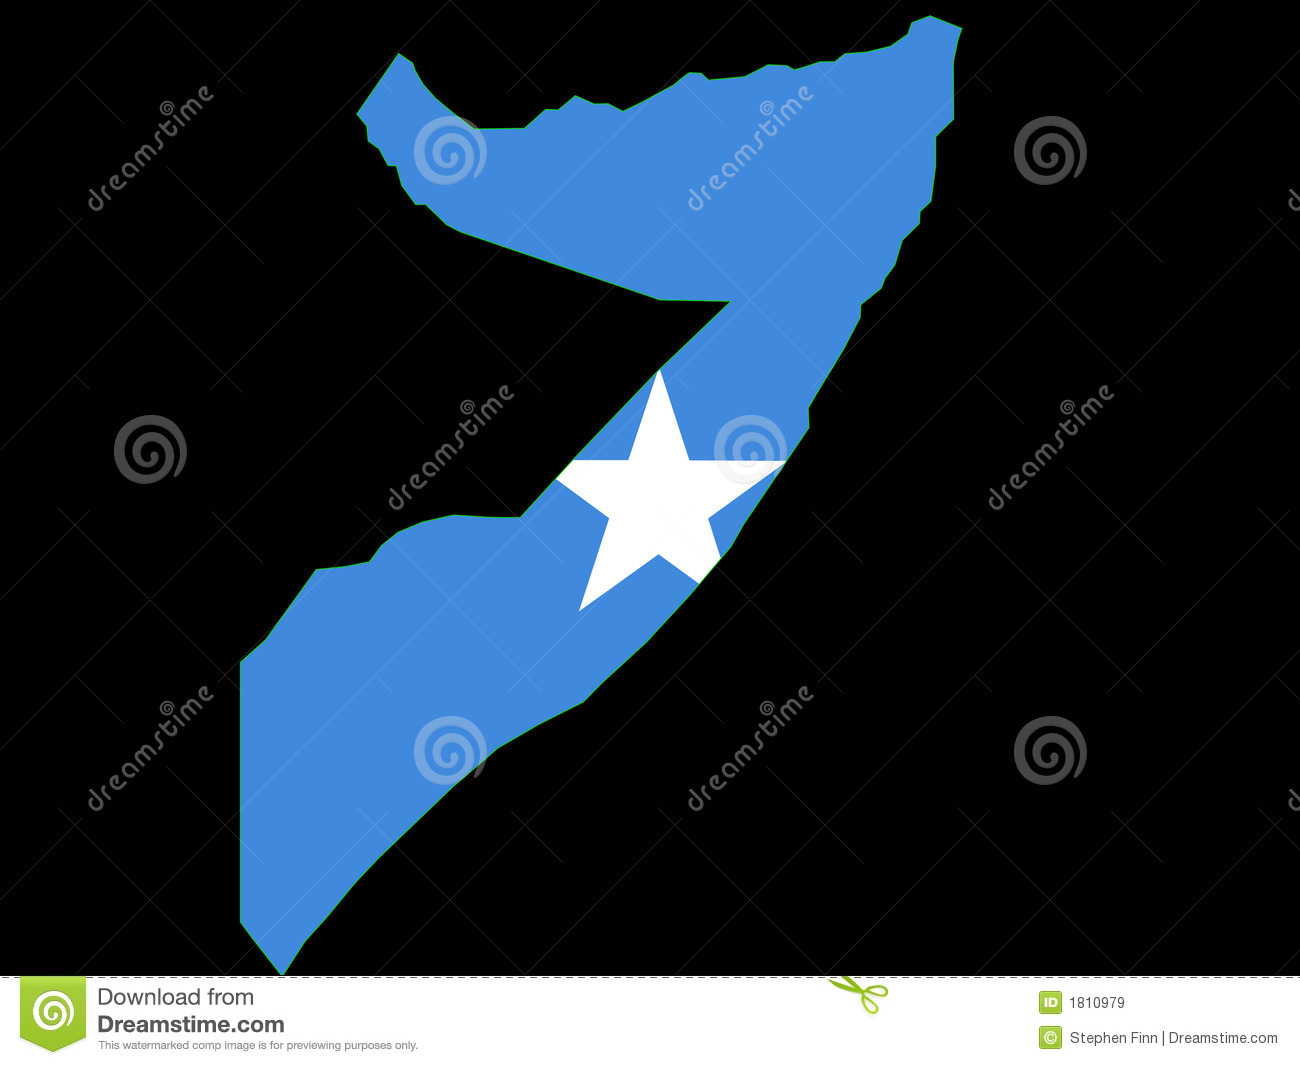 Somalia's flag unoriginal? - SomaliNet Forums